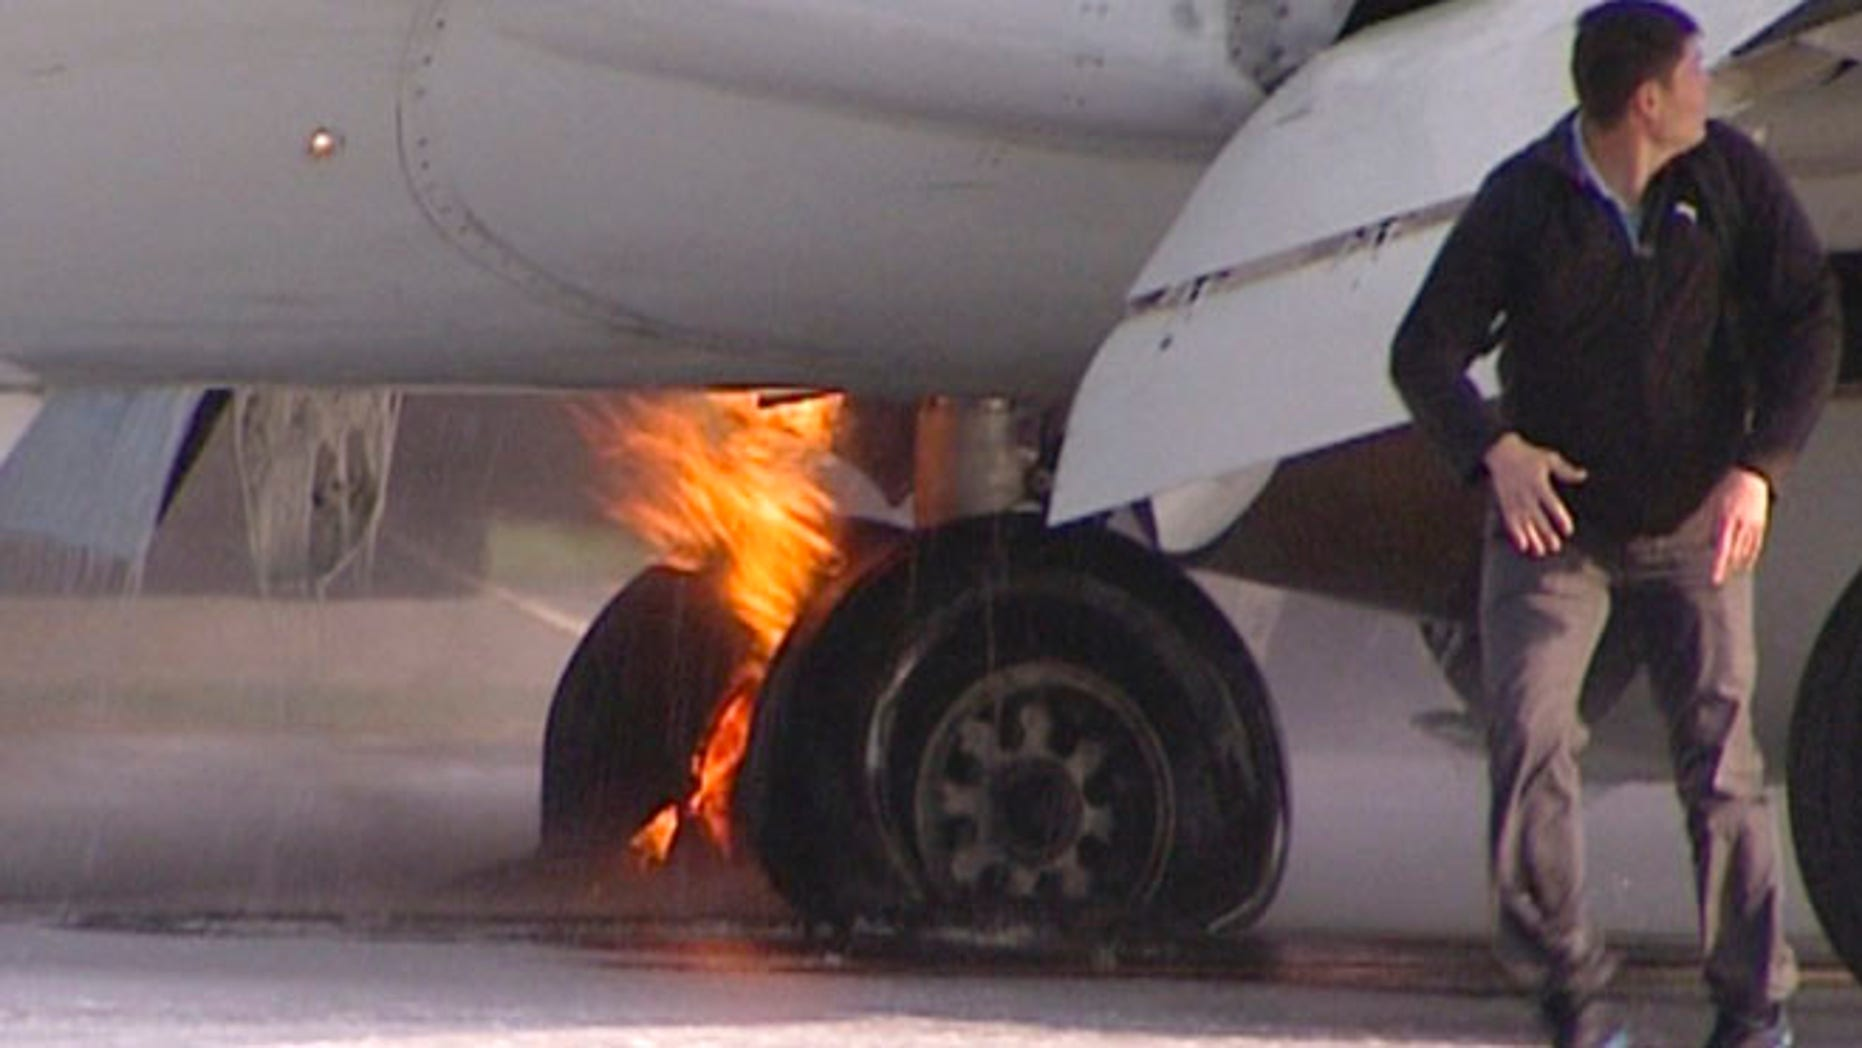 May 18, 2013:  Passengers leave a Boeing 737 belonging to Russian carrier UTair in Vnukovo airport, Russia. Emergency officials said the landing gear of a plane carrying more then 130 people caught on fire as it was landing. All passengers and crew members were safely evacuated.